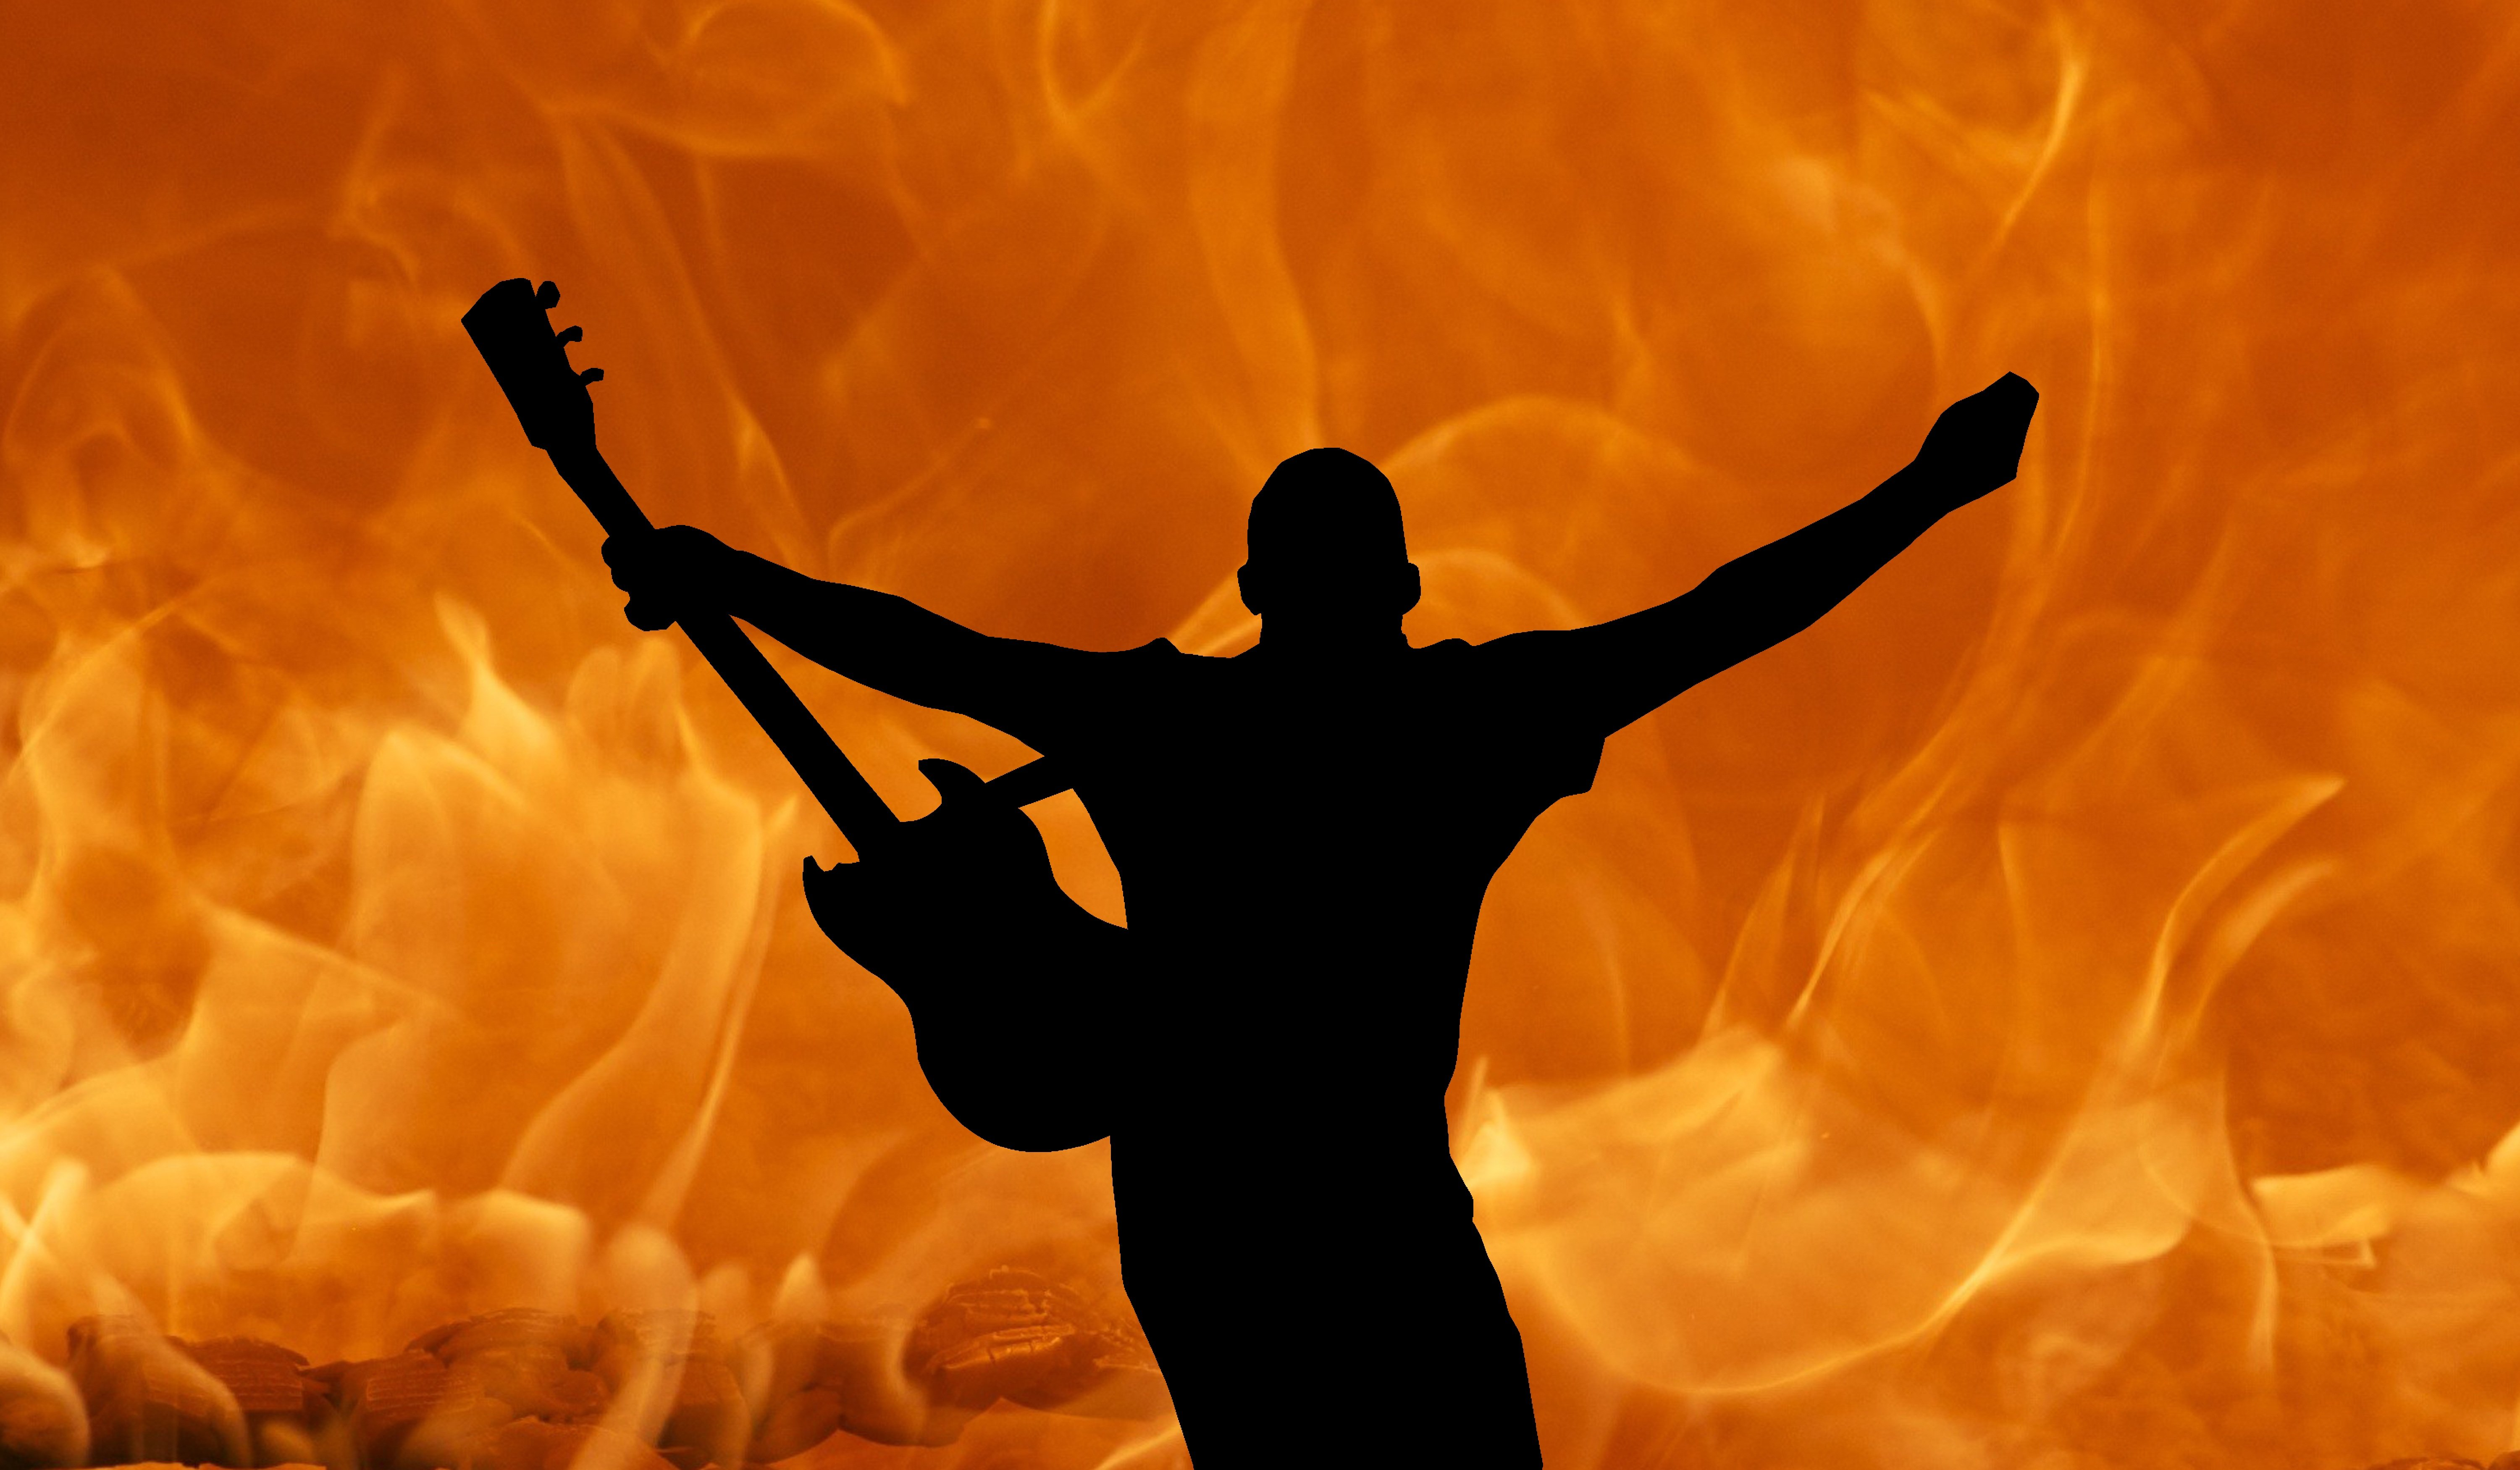 Brings the Fire on Stage With His Guitar wallpaper